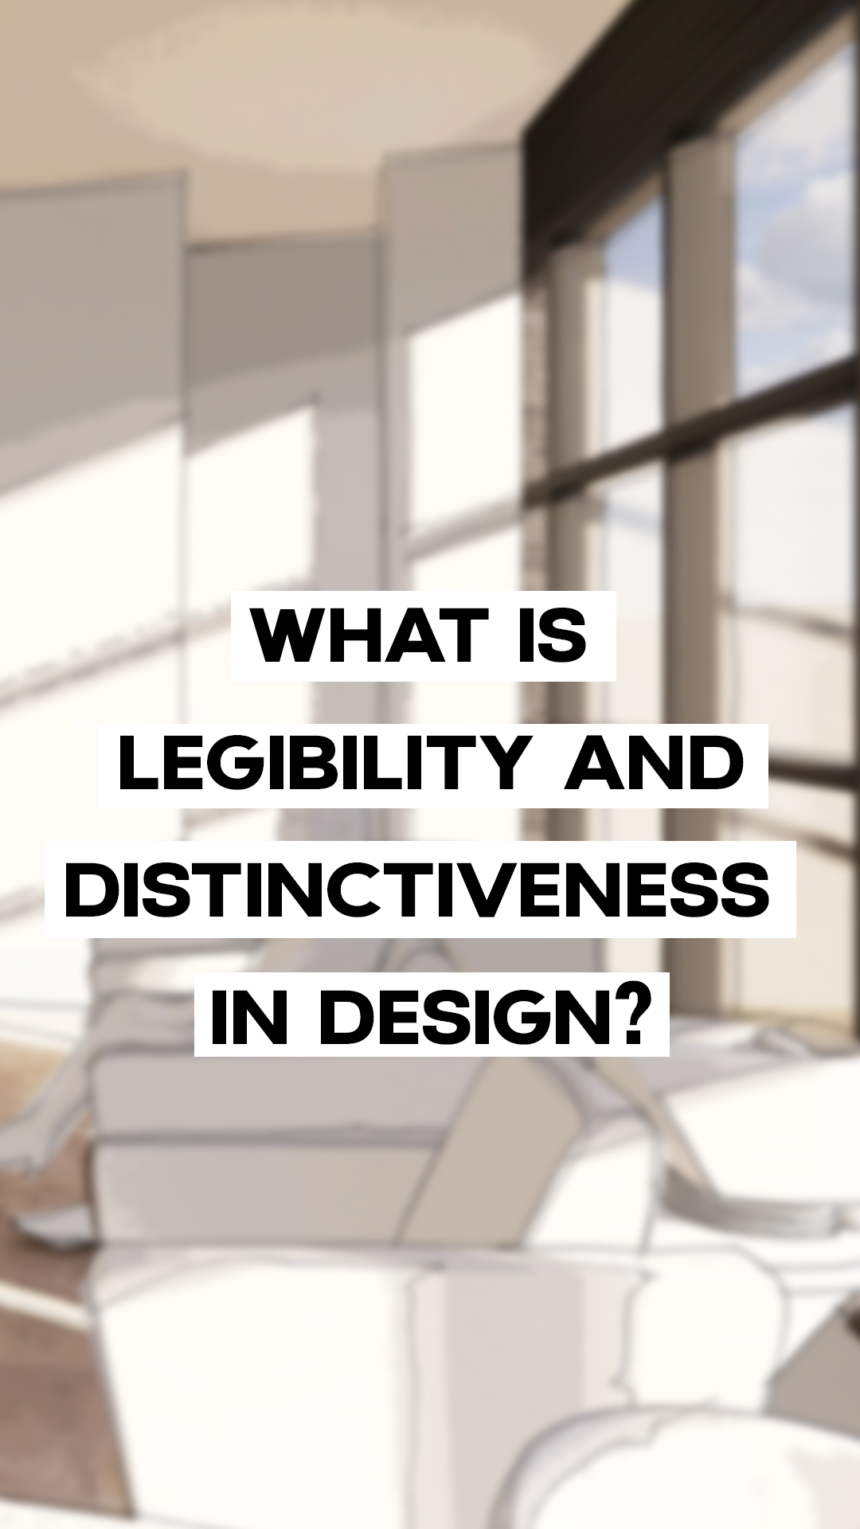 What is legibility and distinctiveness in design?